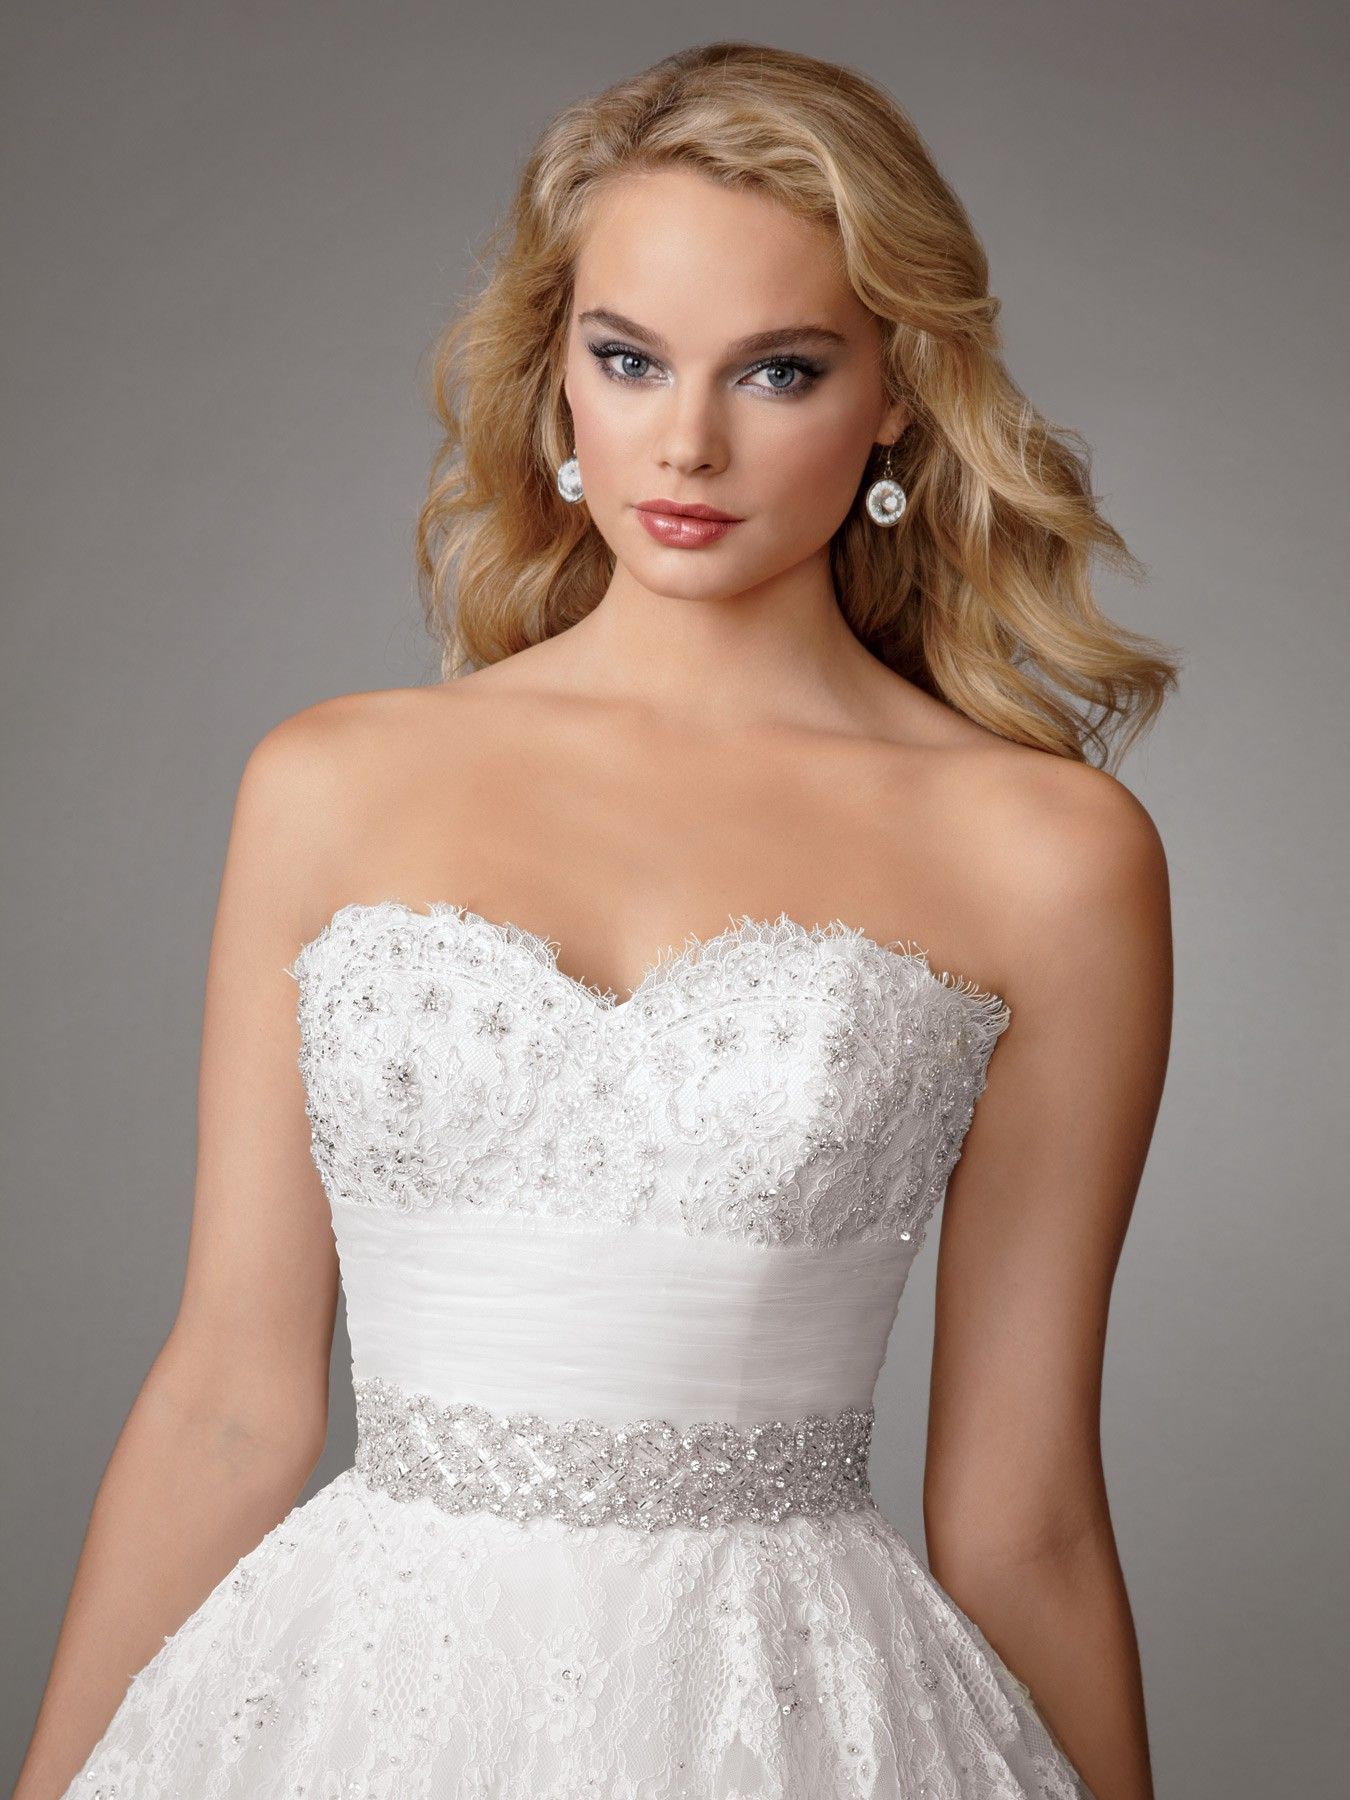 Most expensive wedding dress in the world  Jordan Fashions M bodice  The most expensive dress you will ever